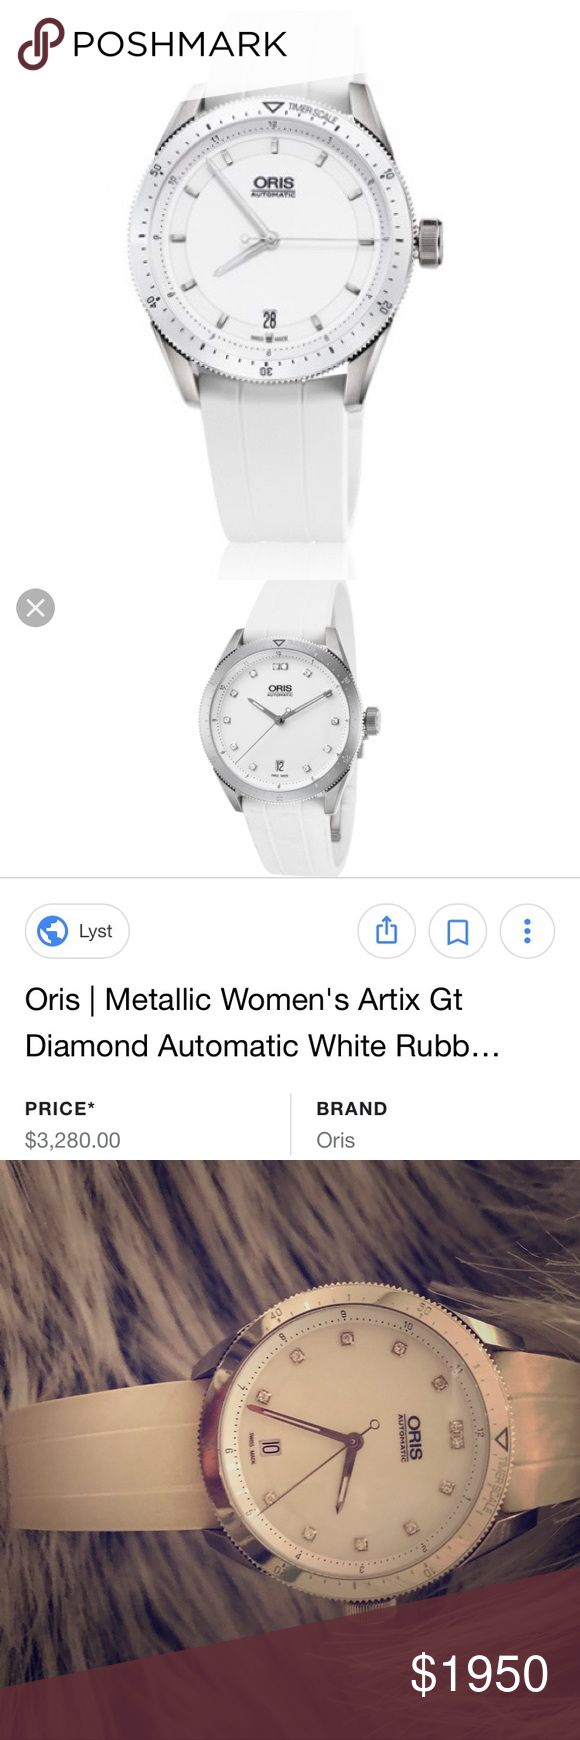 ORIS white real diamond sporty watch Only wore twice, no scratches on the face as seen in pictures. Band is white but it is not bright white as shown in stock photos. Please ask all questions before purchasing as this is final sale. I do not know the carat weight but they are 100% real diamonds. I purchased this in Las Vegas at the fashion show mall from Berger and Son. This piece is amazing! Oris Accessories Watches